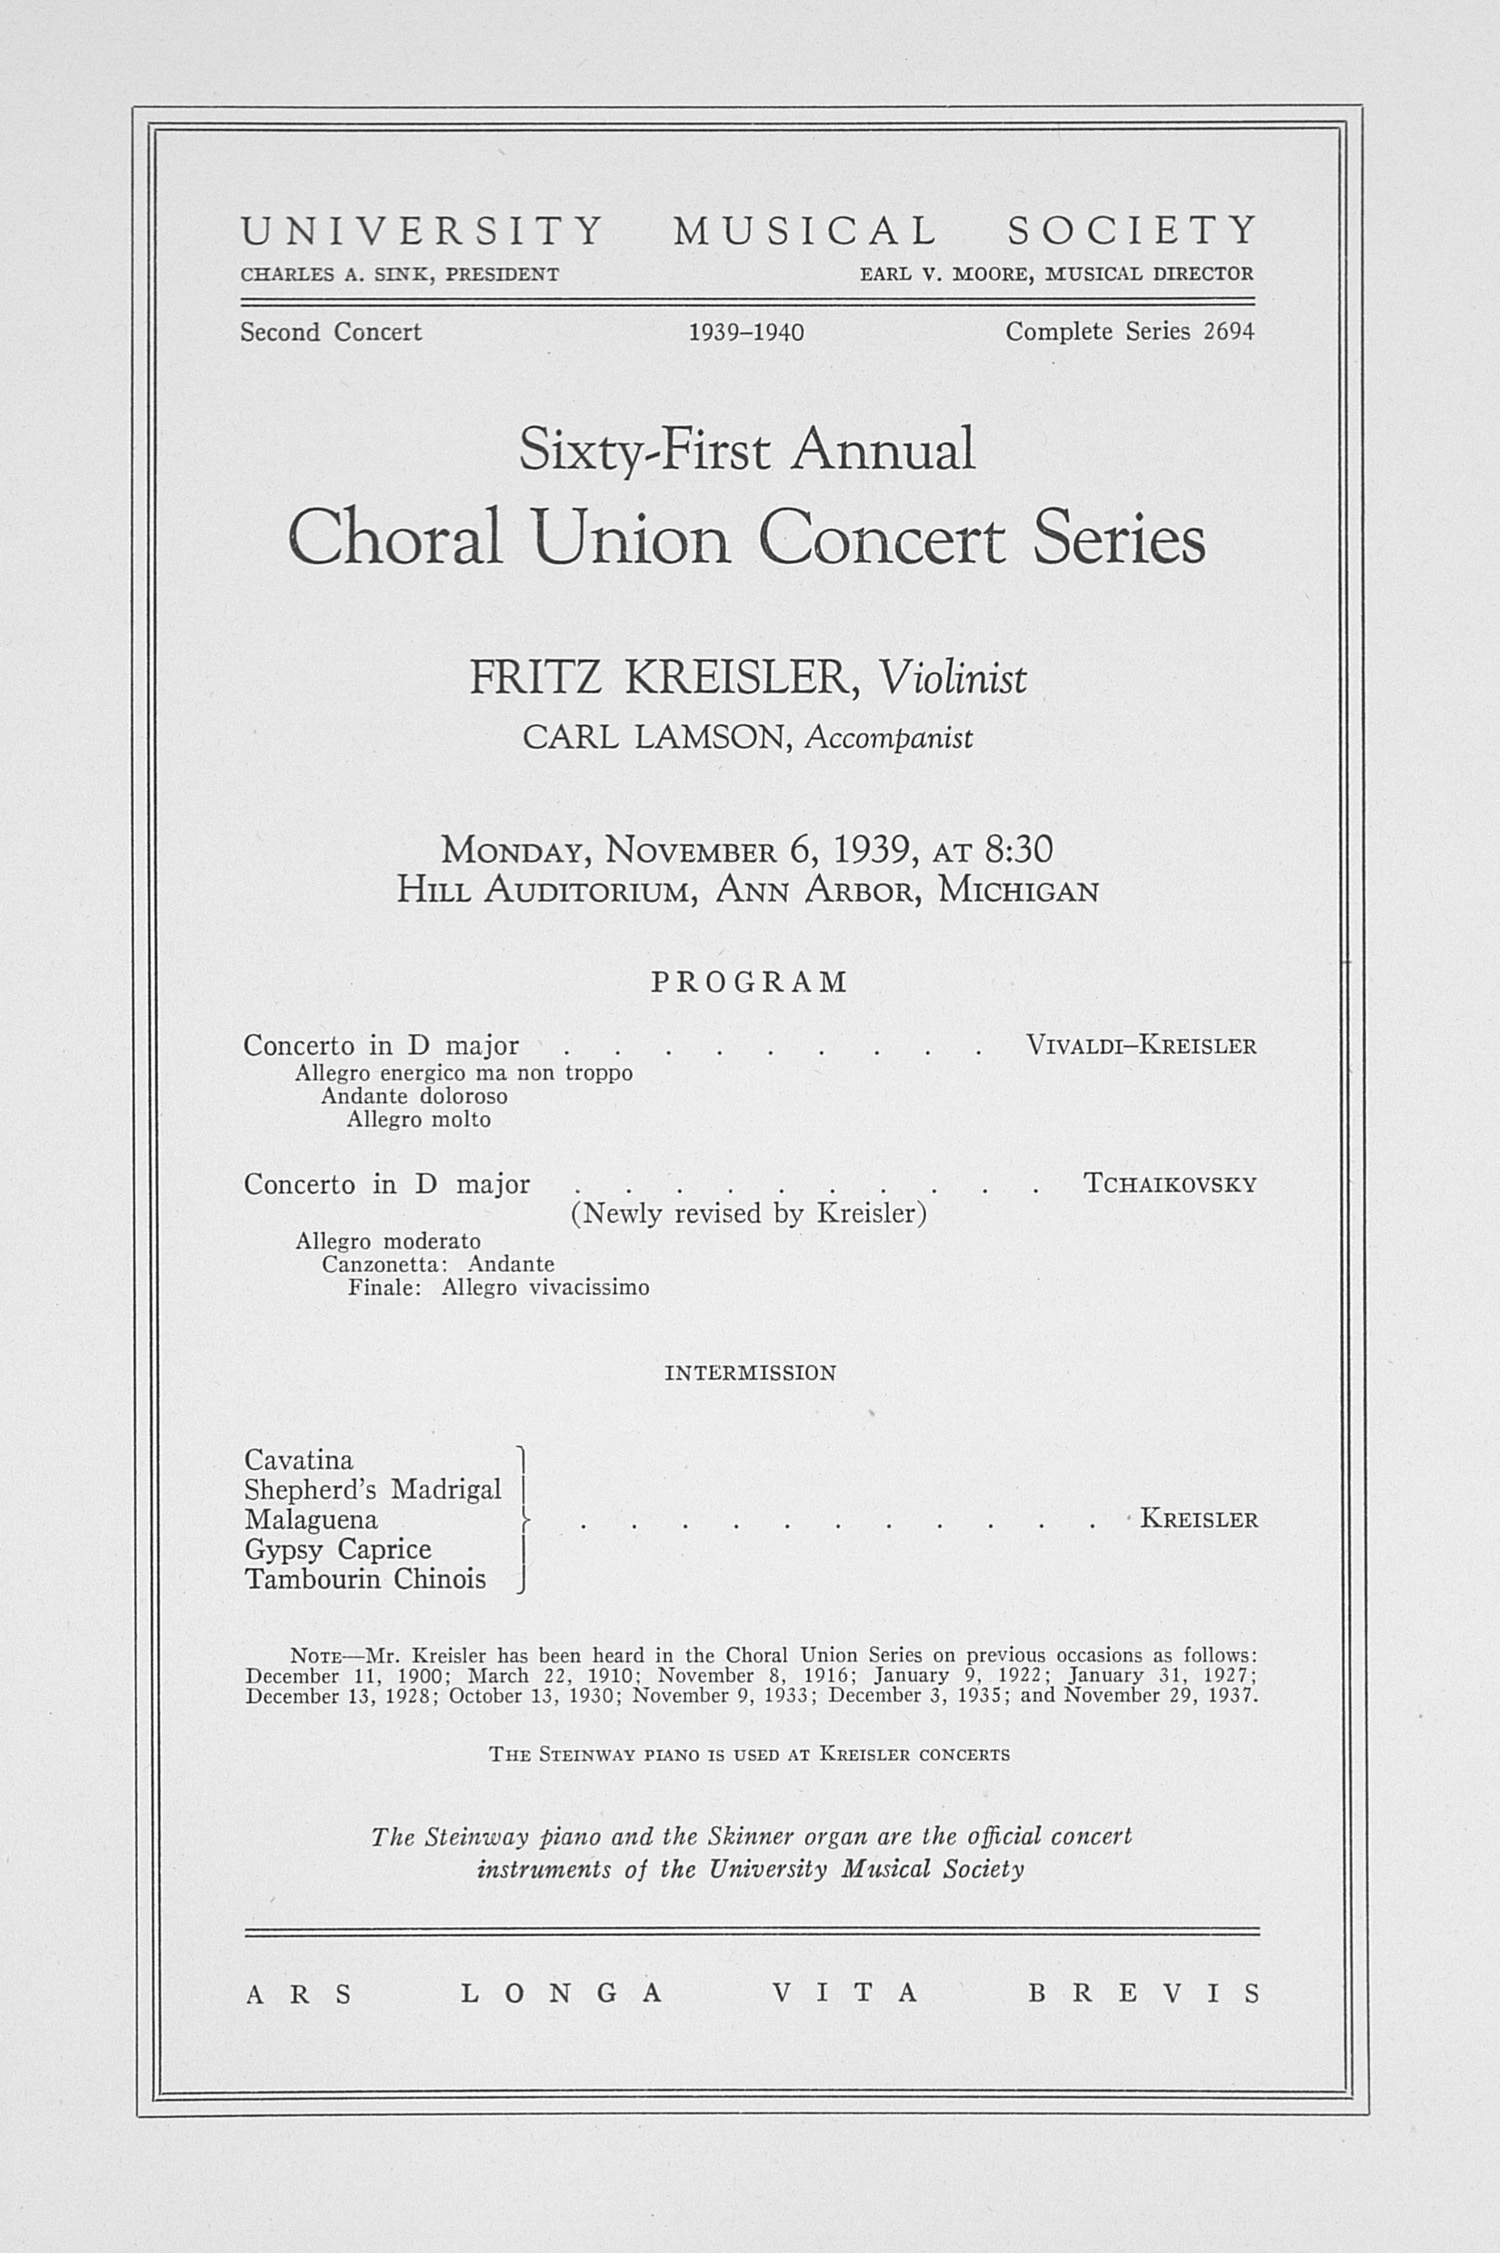 UMS Concert Program, November 6, 1939: Sixty-first Annual Choral Union Concert Series -- Fritz Kreisler image